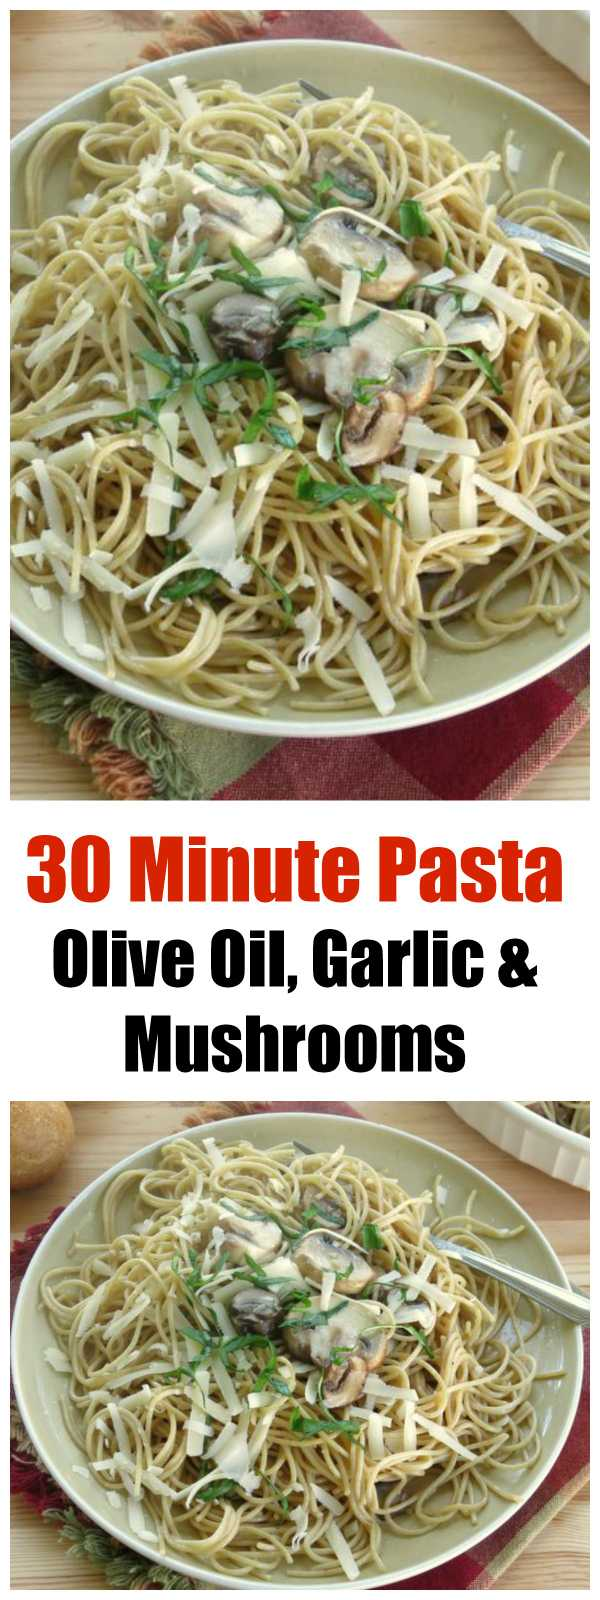 Pasta oglio olio - Whole wheat pasta with olive oil, garlic, mushrooms and optional freshly grated Parmesan cheese - Easy, healthy, vegetarian dinner recipe that uses no cream!